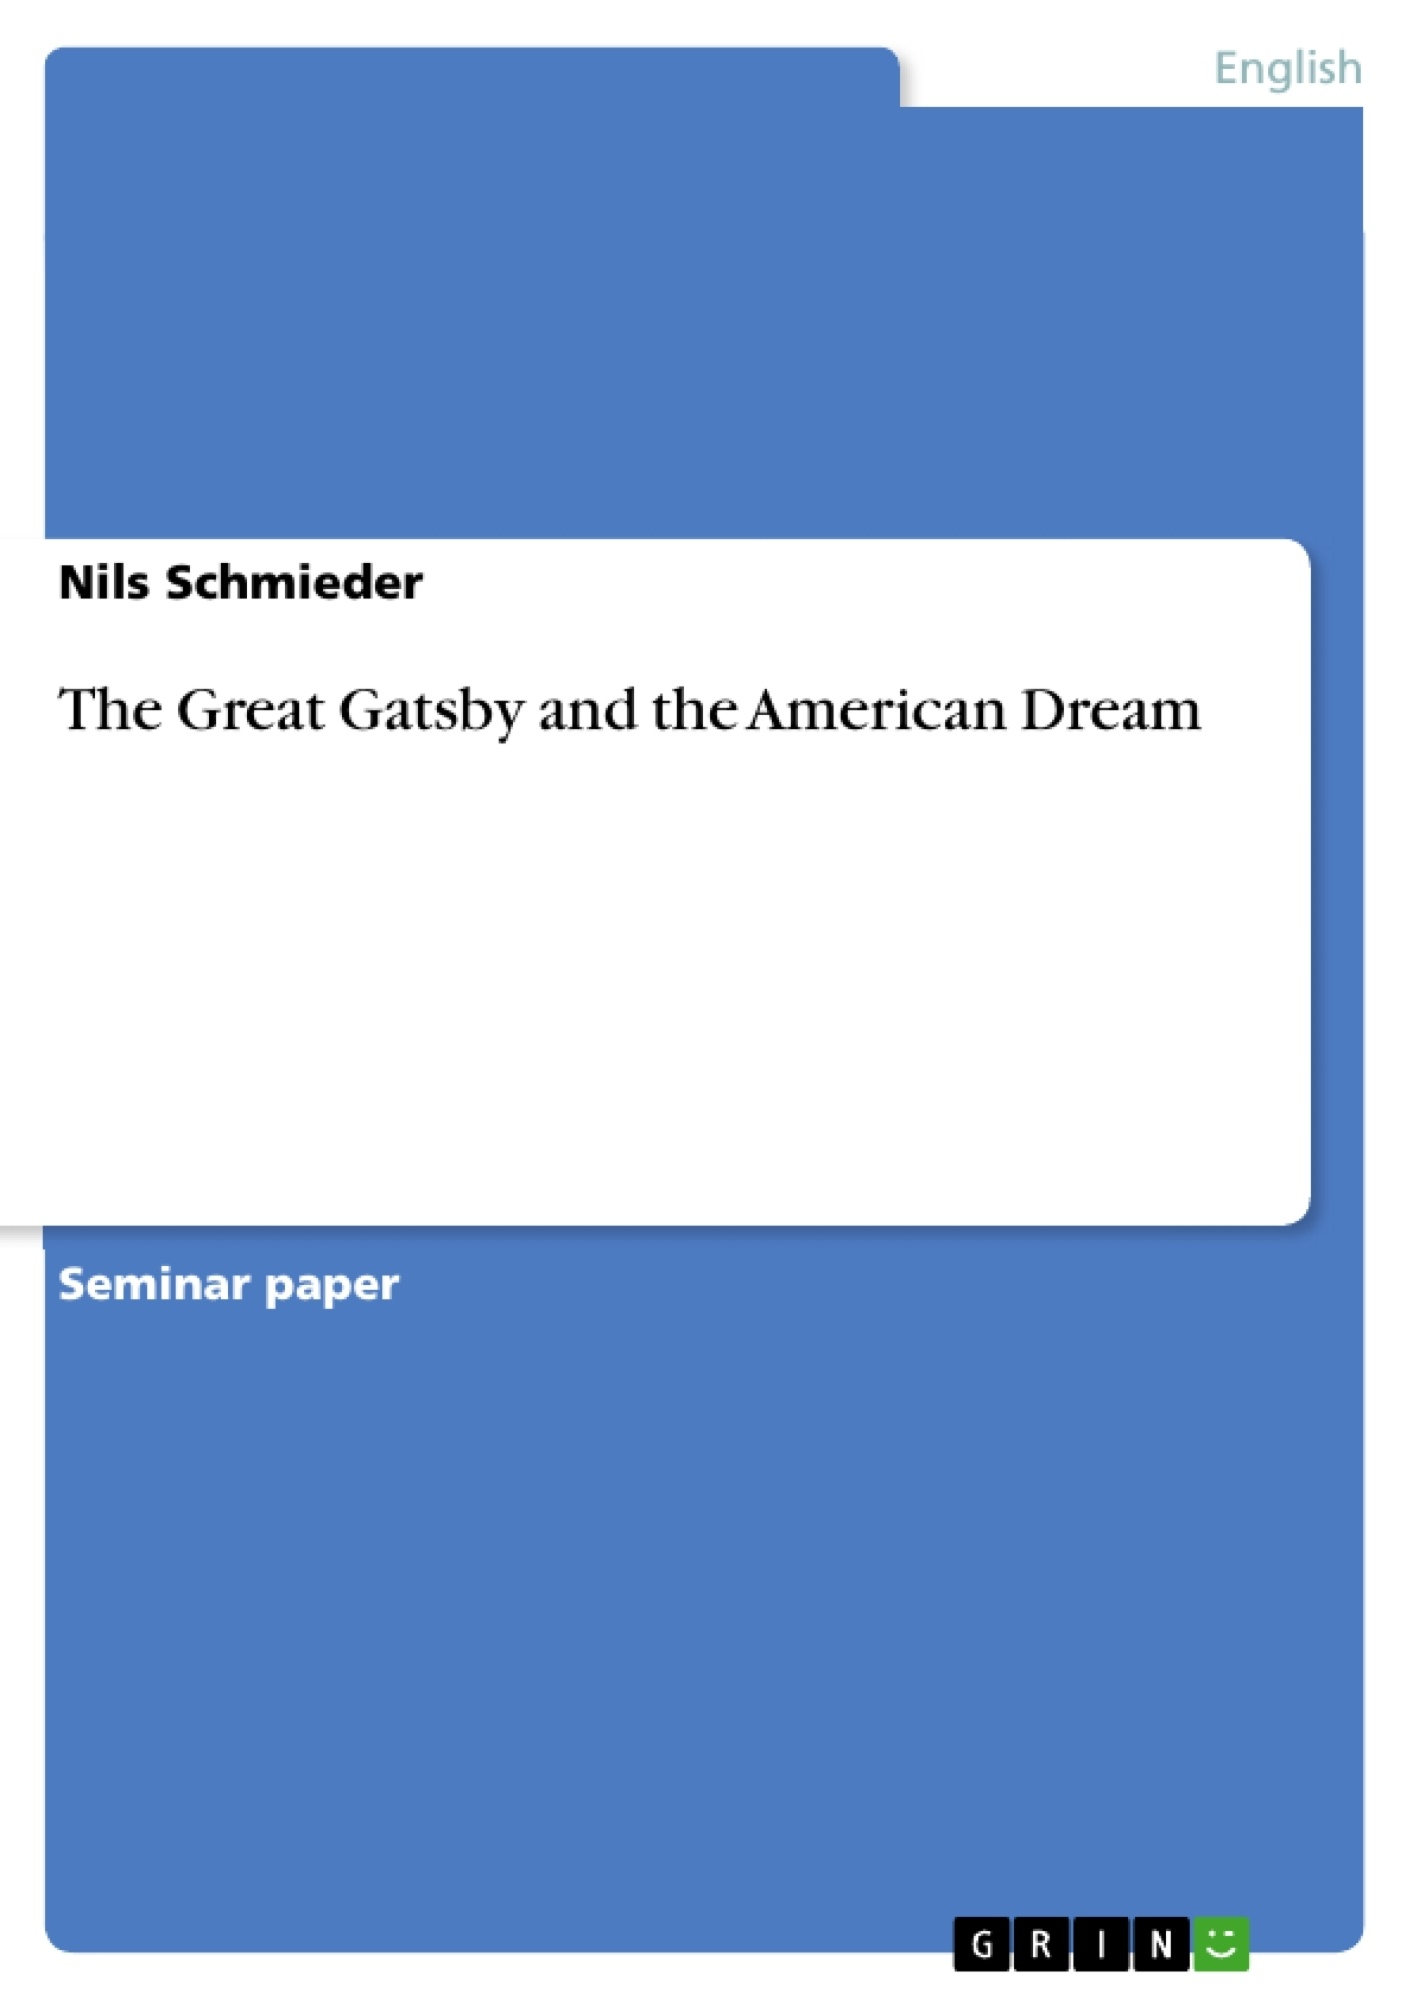 american dream in the great gatsby essay the great gatsby semester  the great gatsby and the american dream publish your master s upload your own papers earn